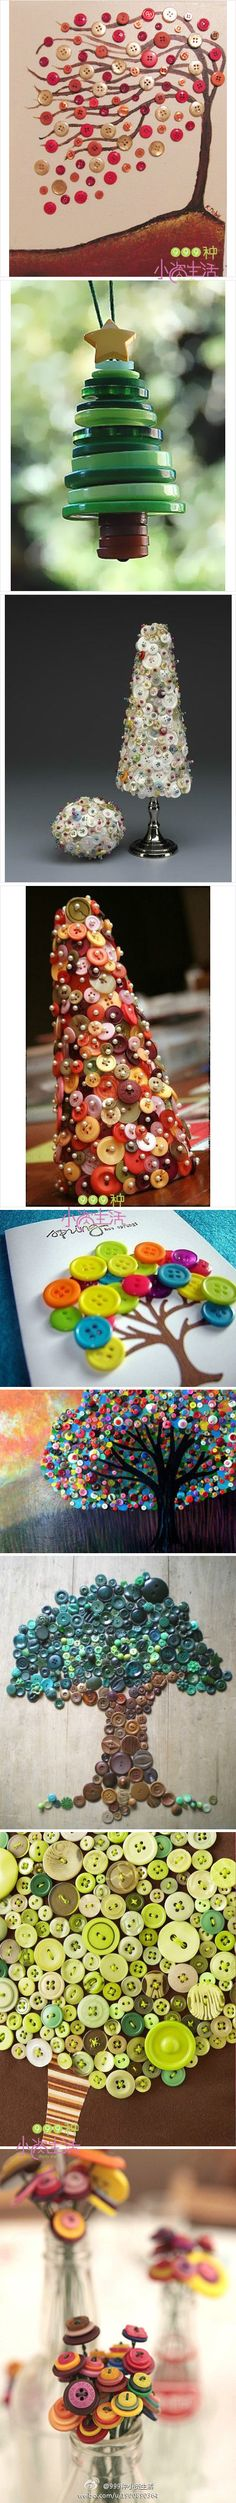 Button crafts - too cool!